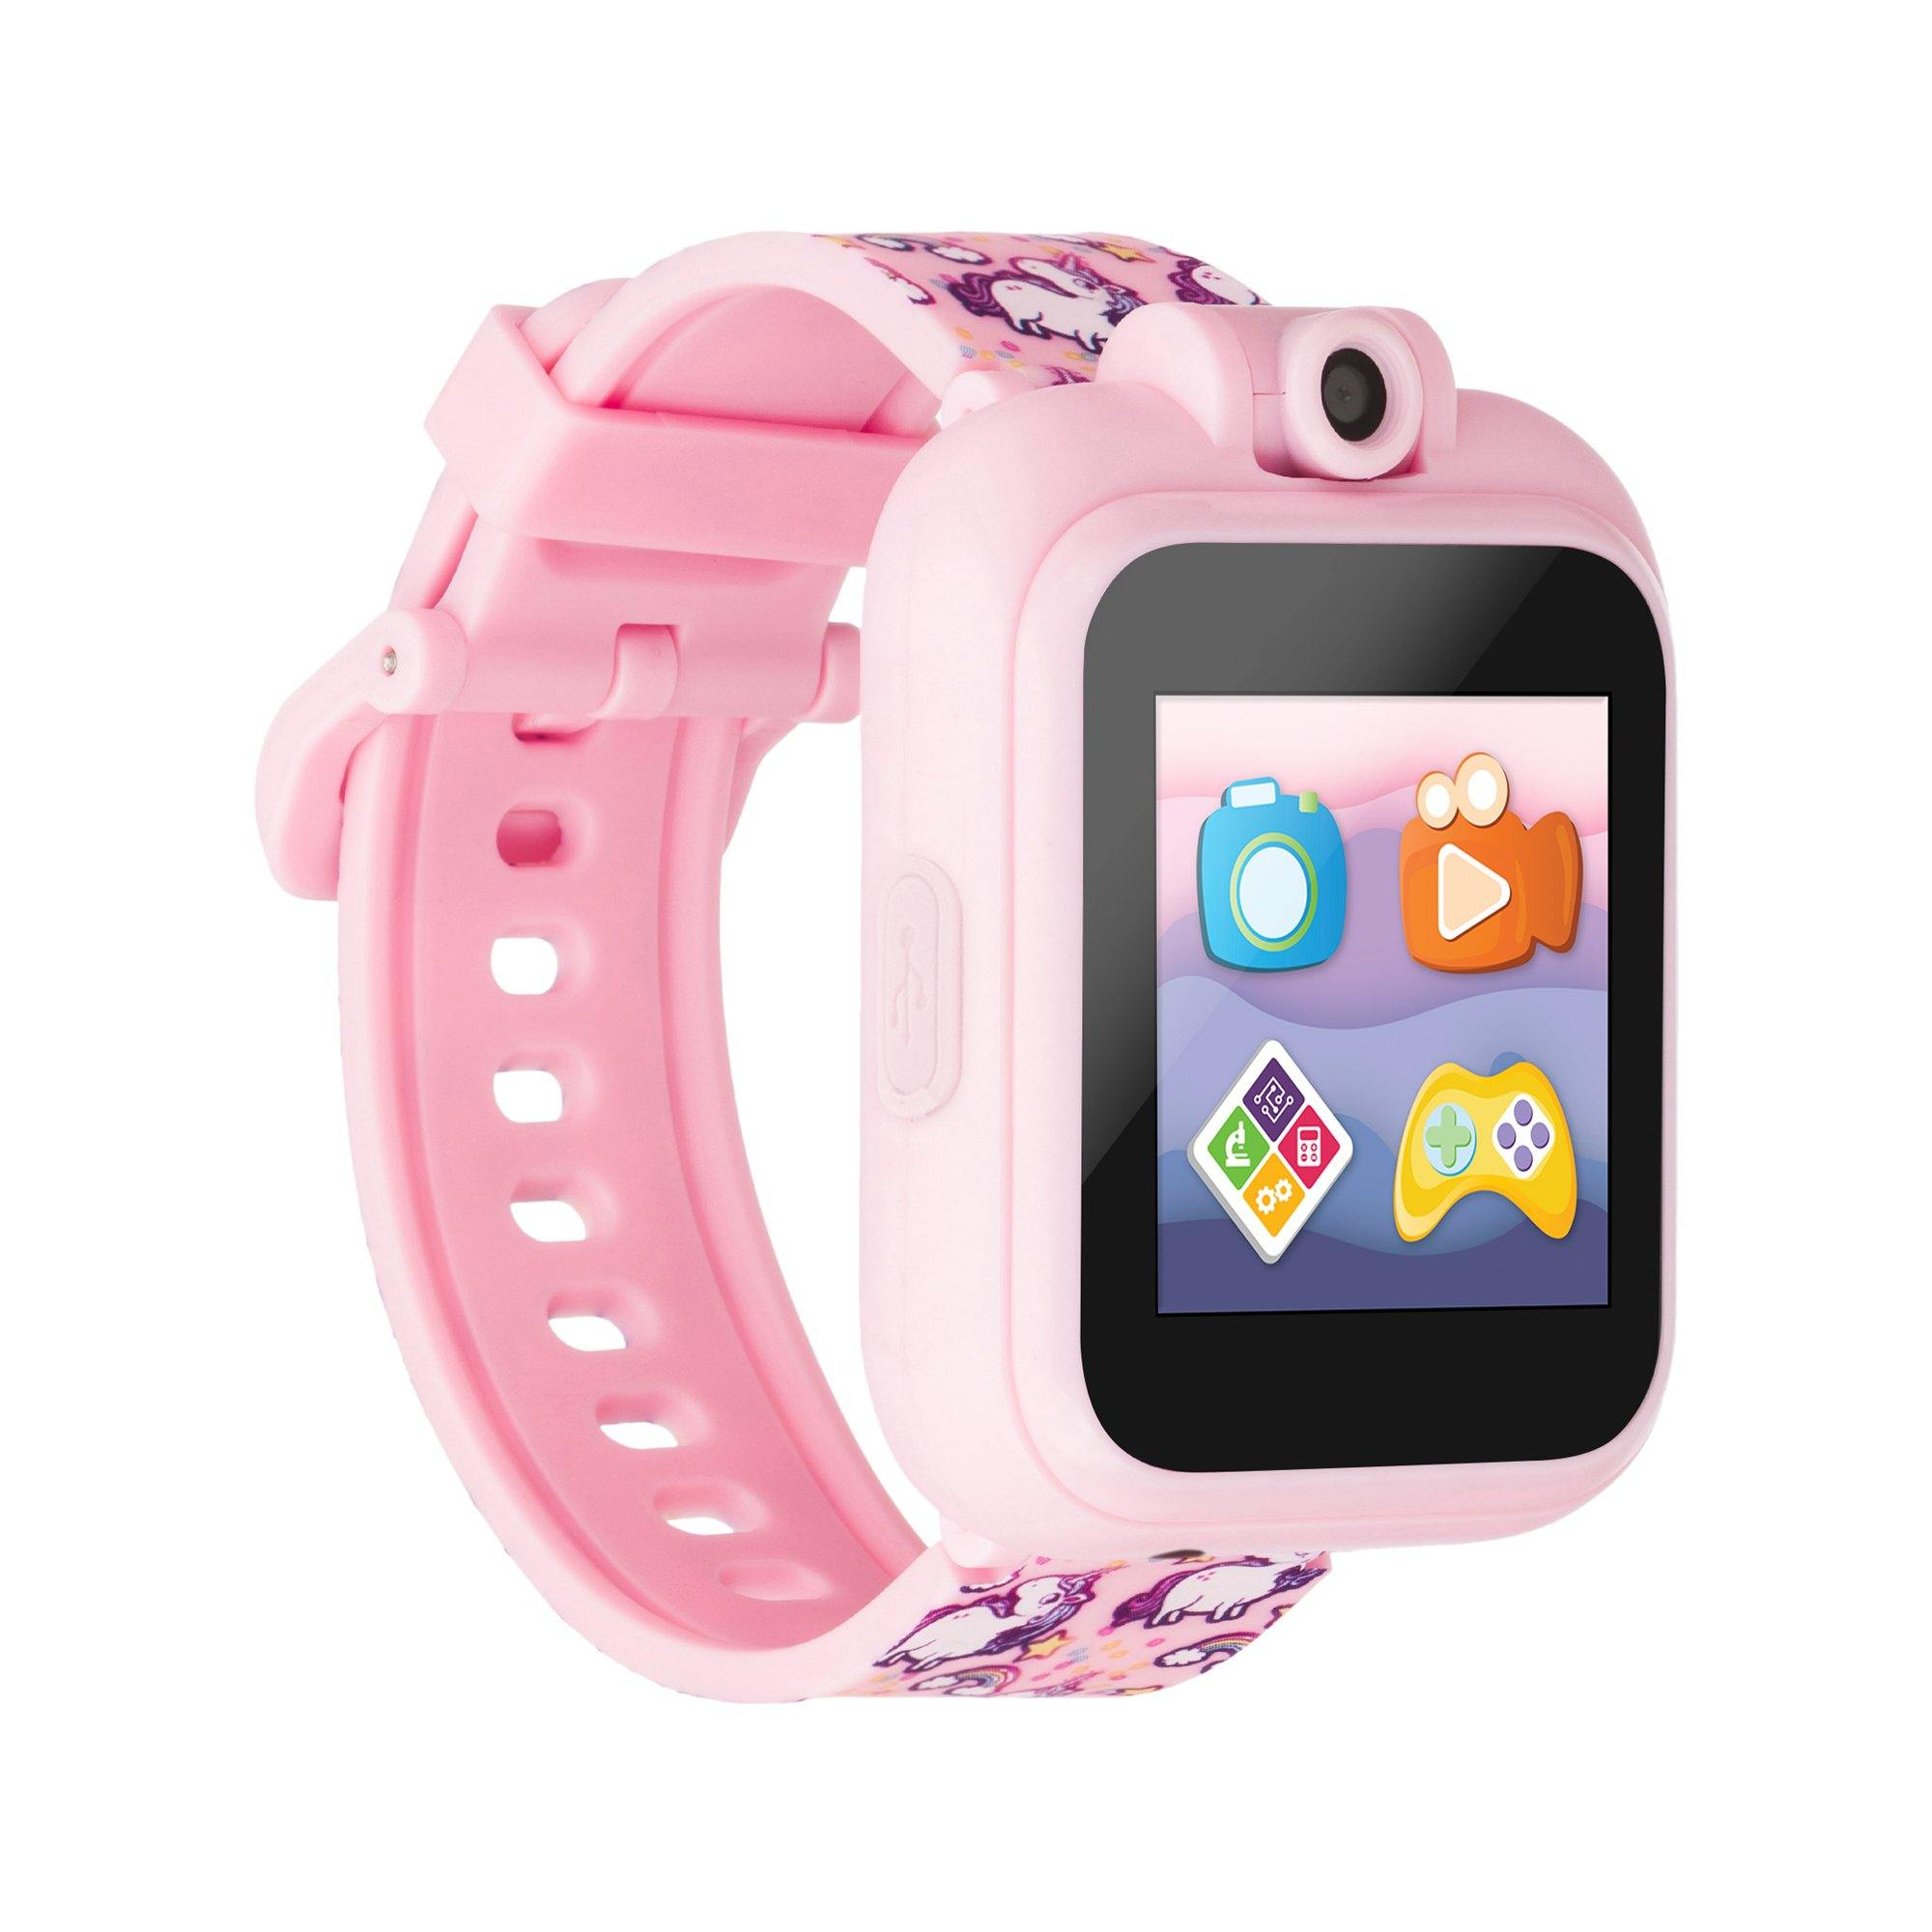 PlayZoom 2 Kids Smartwatch: Pink Unicorn Print